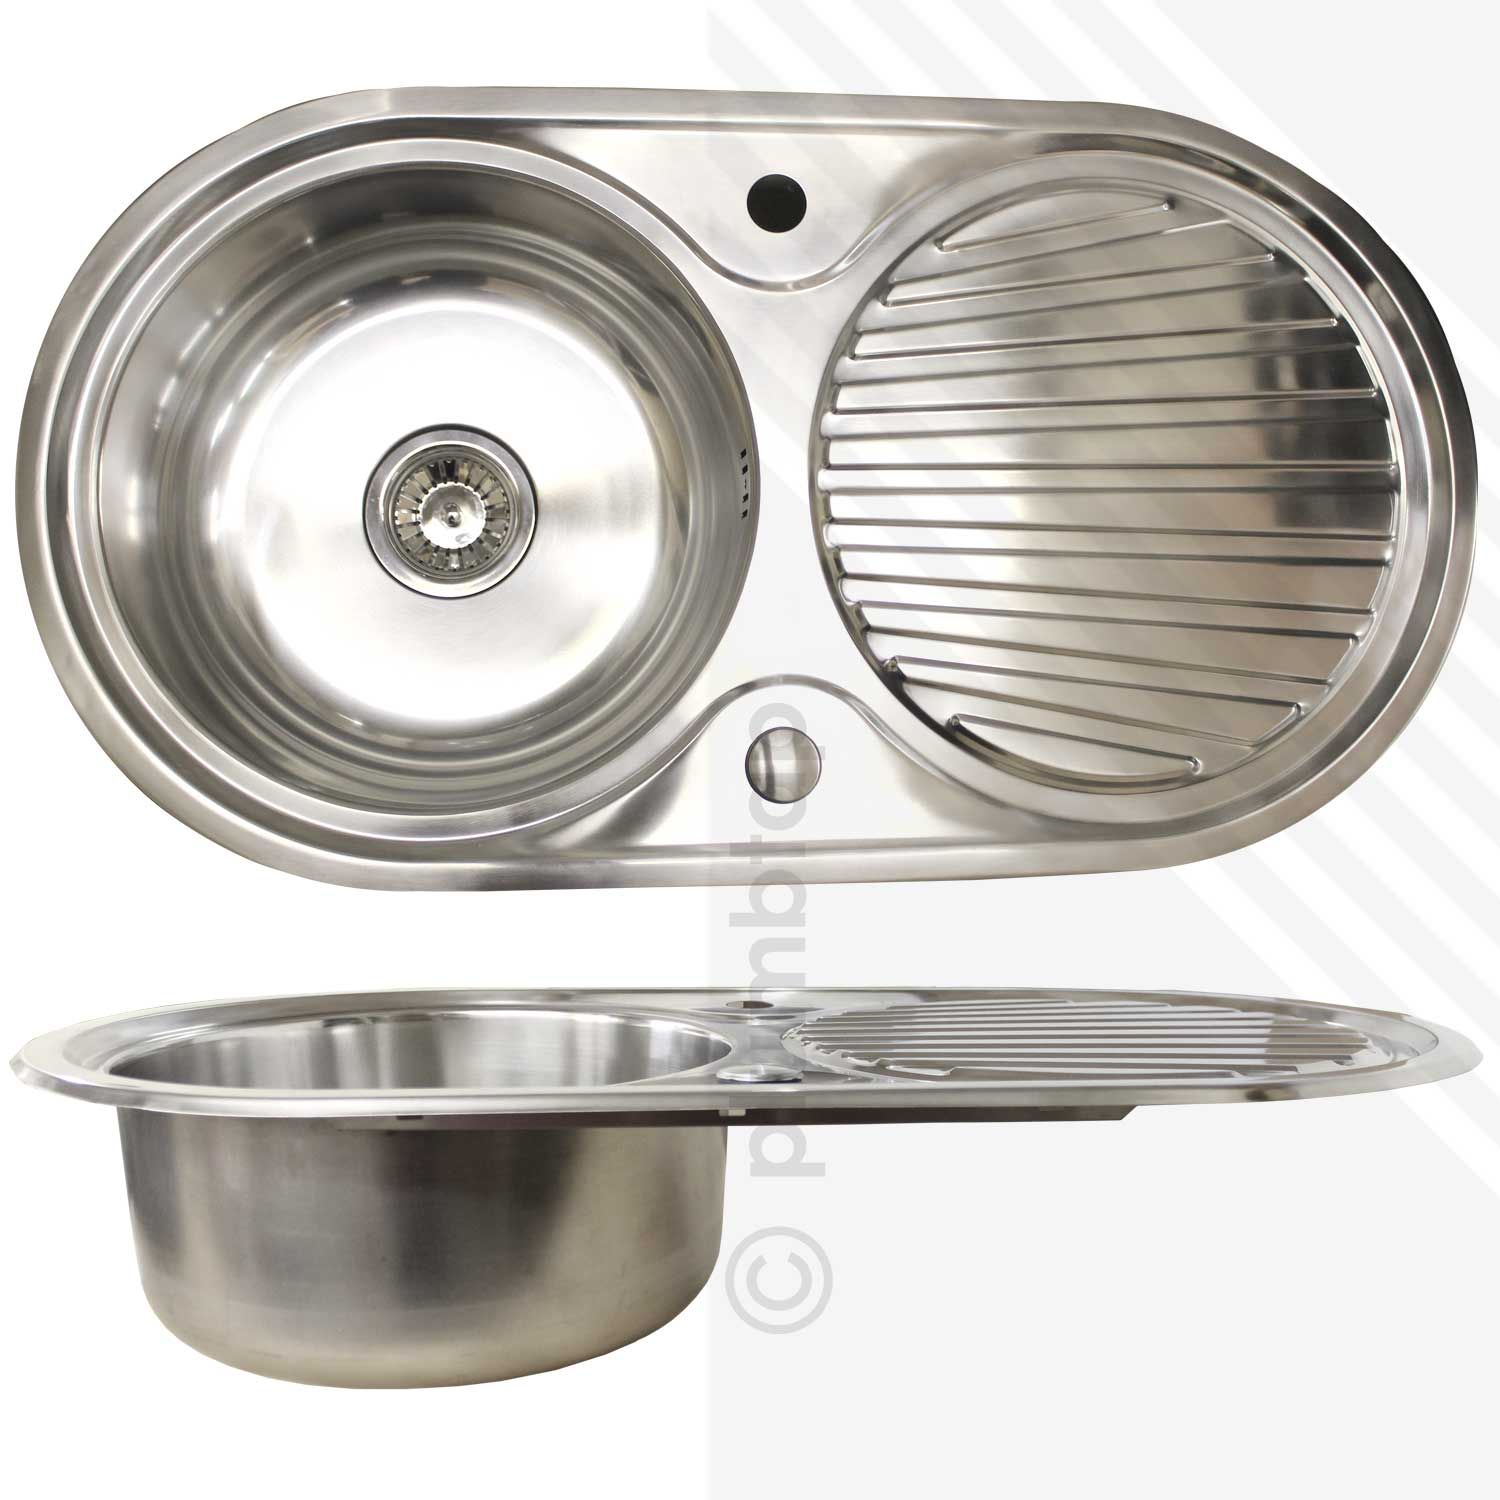 Inset Kitchen Sink Bowl